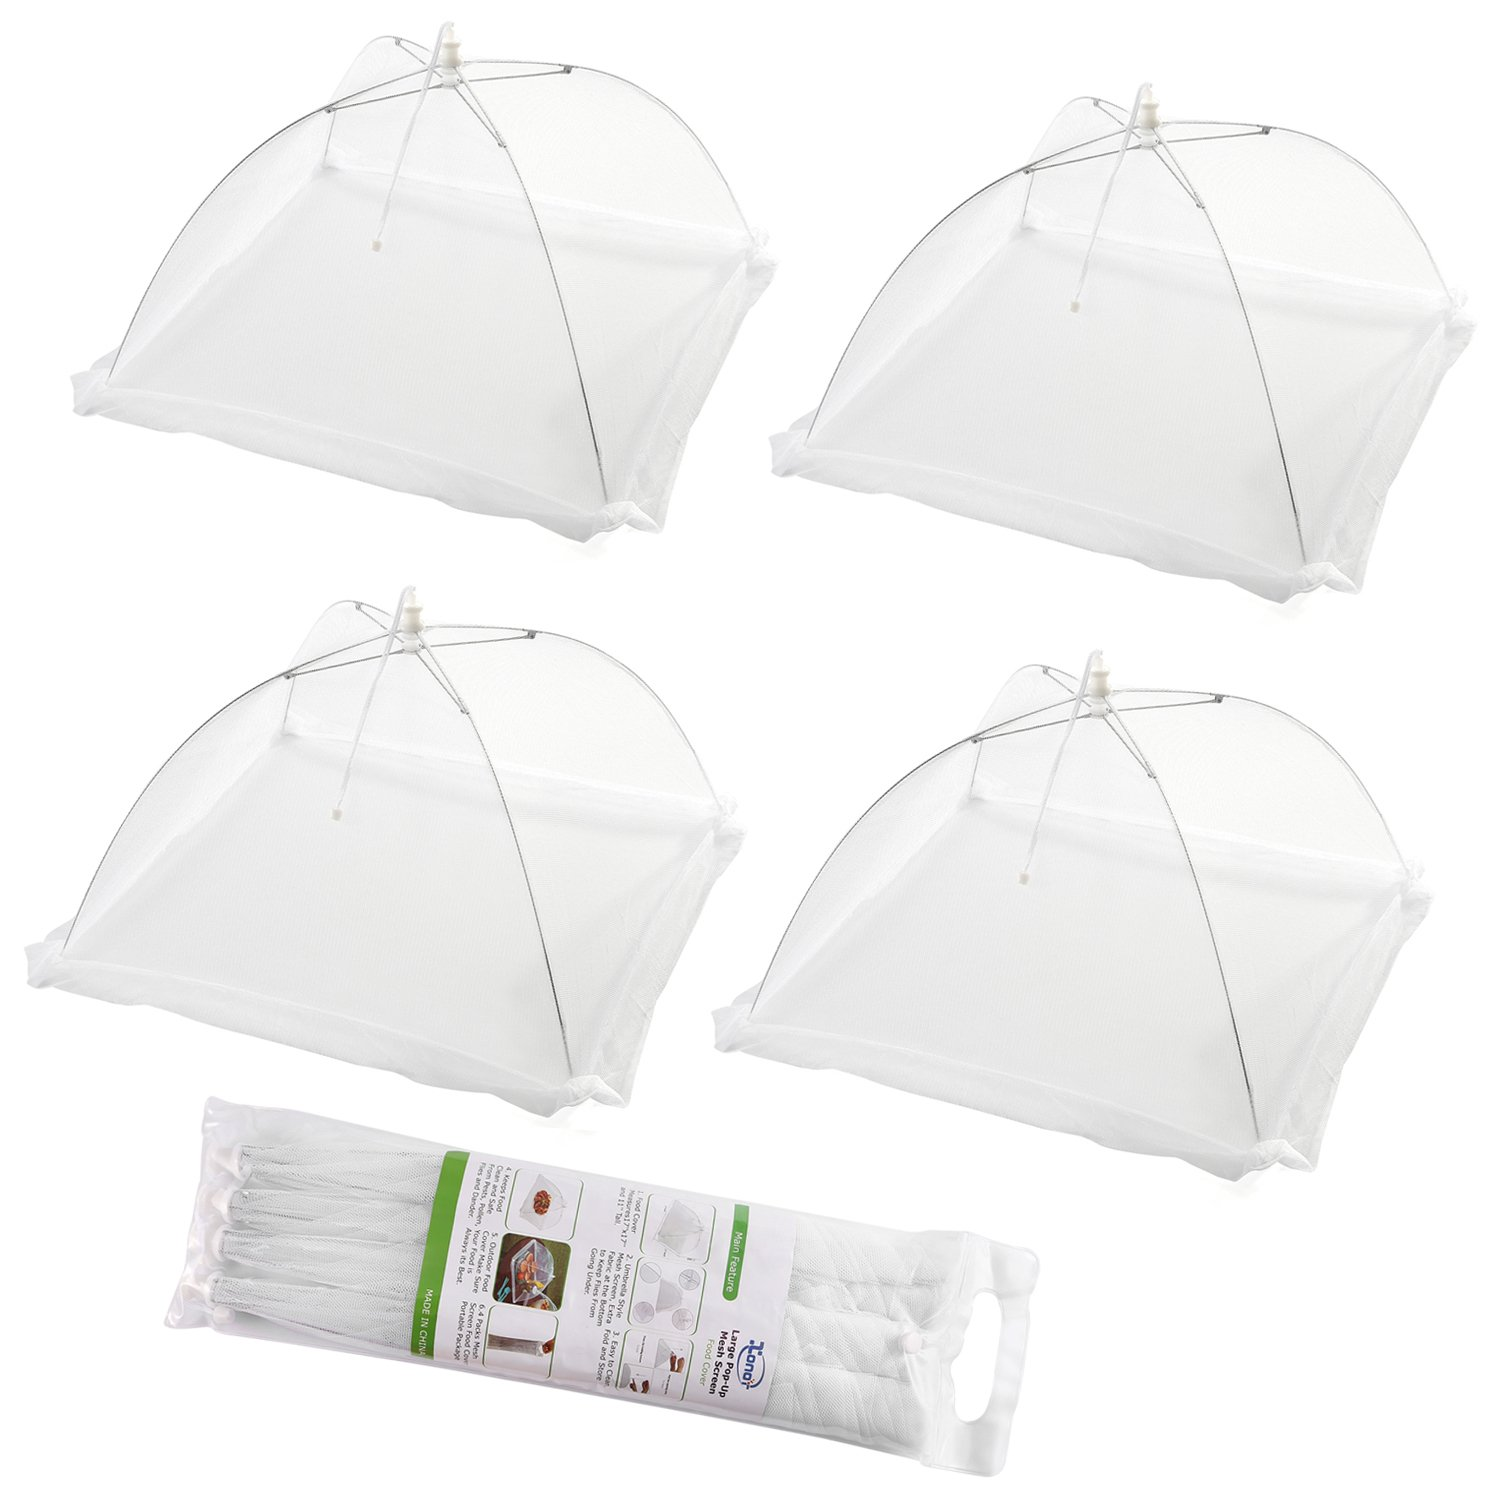 (Set of 4) Large Pop-Up Mesh Screen Food Cover Tents - Keep Out Flies, Bugs, Mosquitos - Reusable XONOR